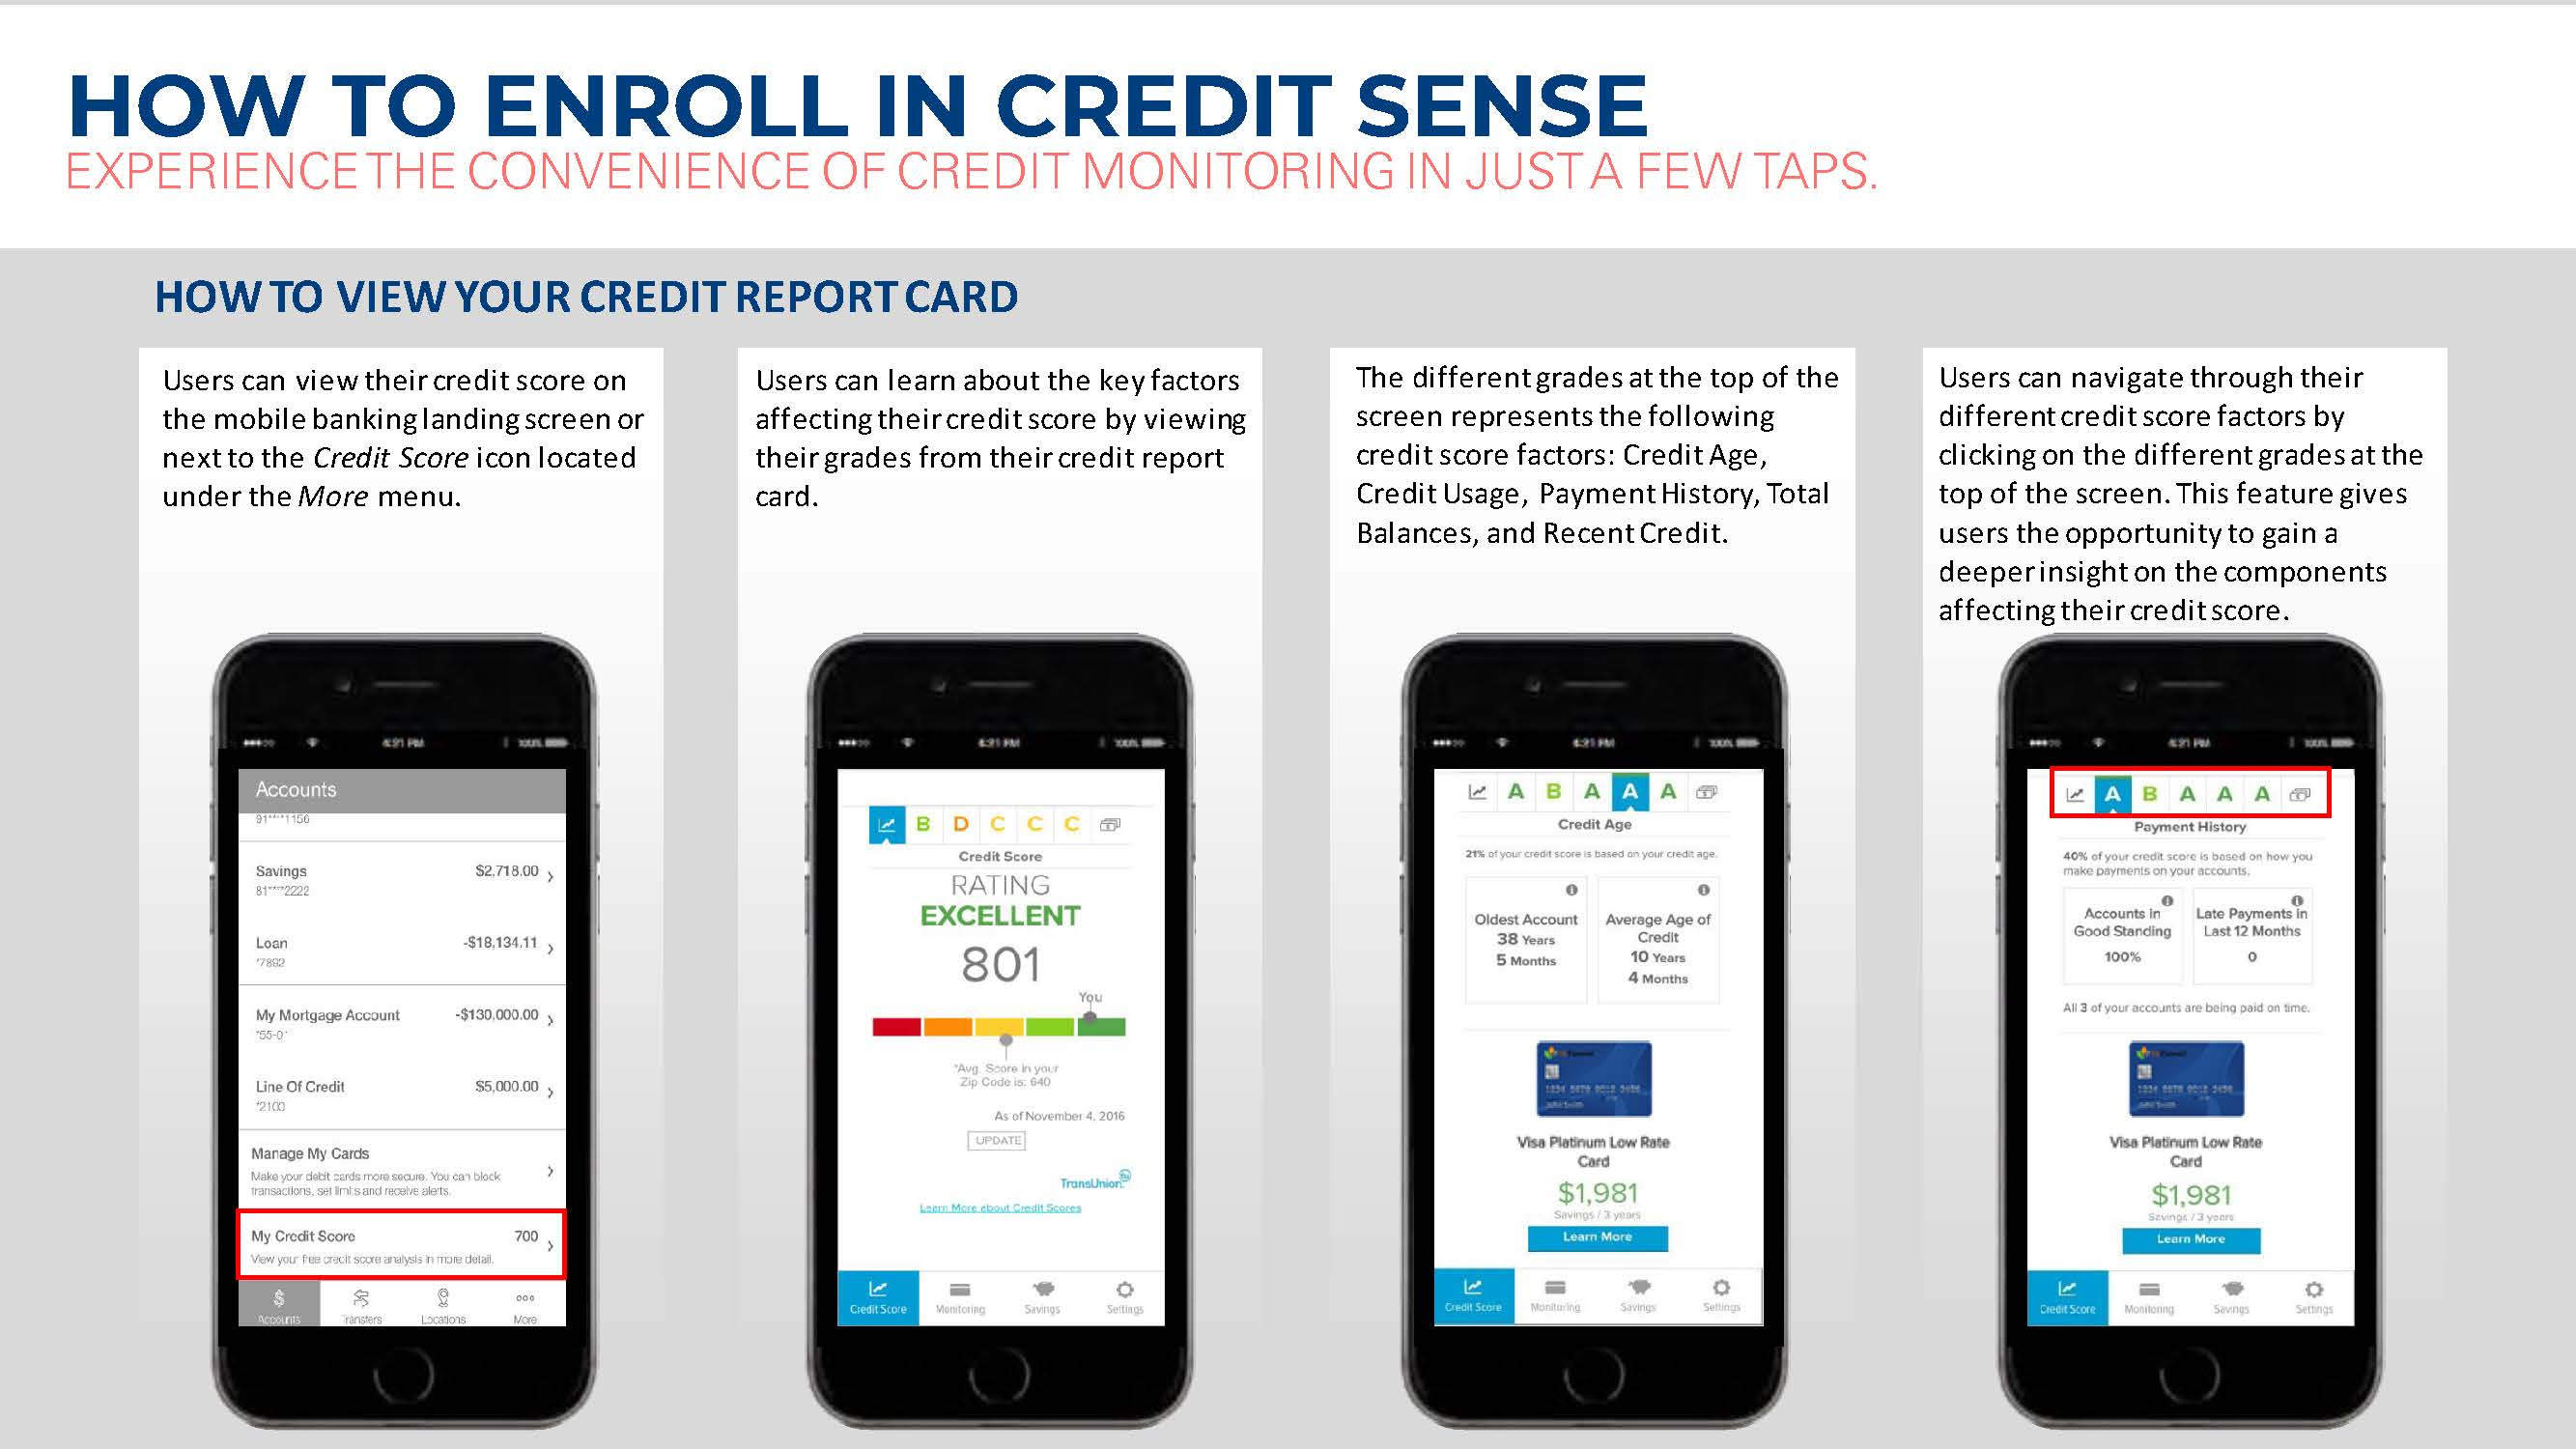 How to view credit report